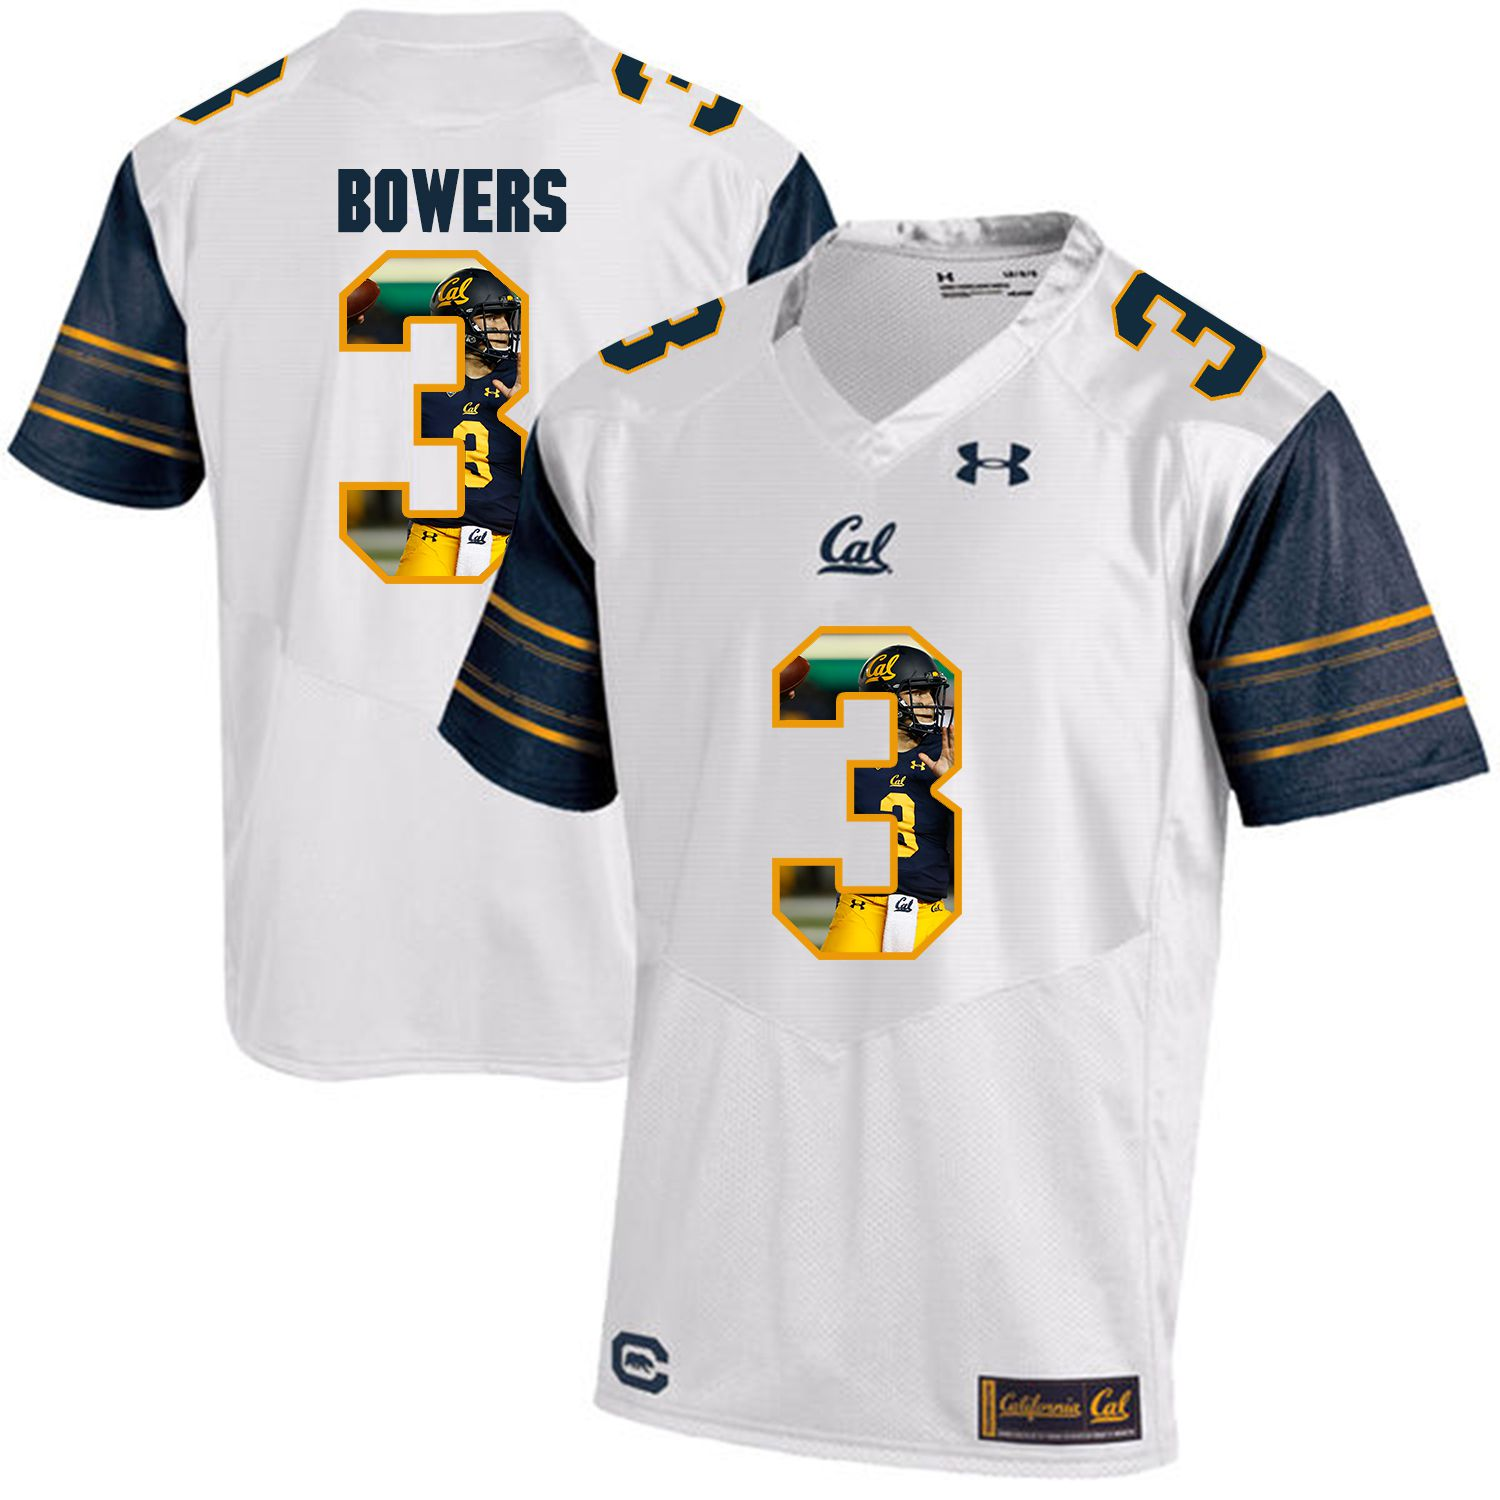 Men California Golden Bears 3 Ross Bowers White Customized NCAA Jerseys1